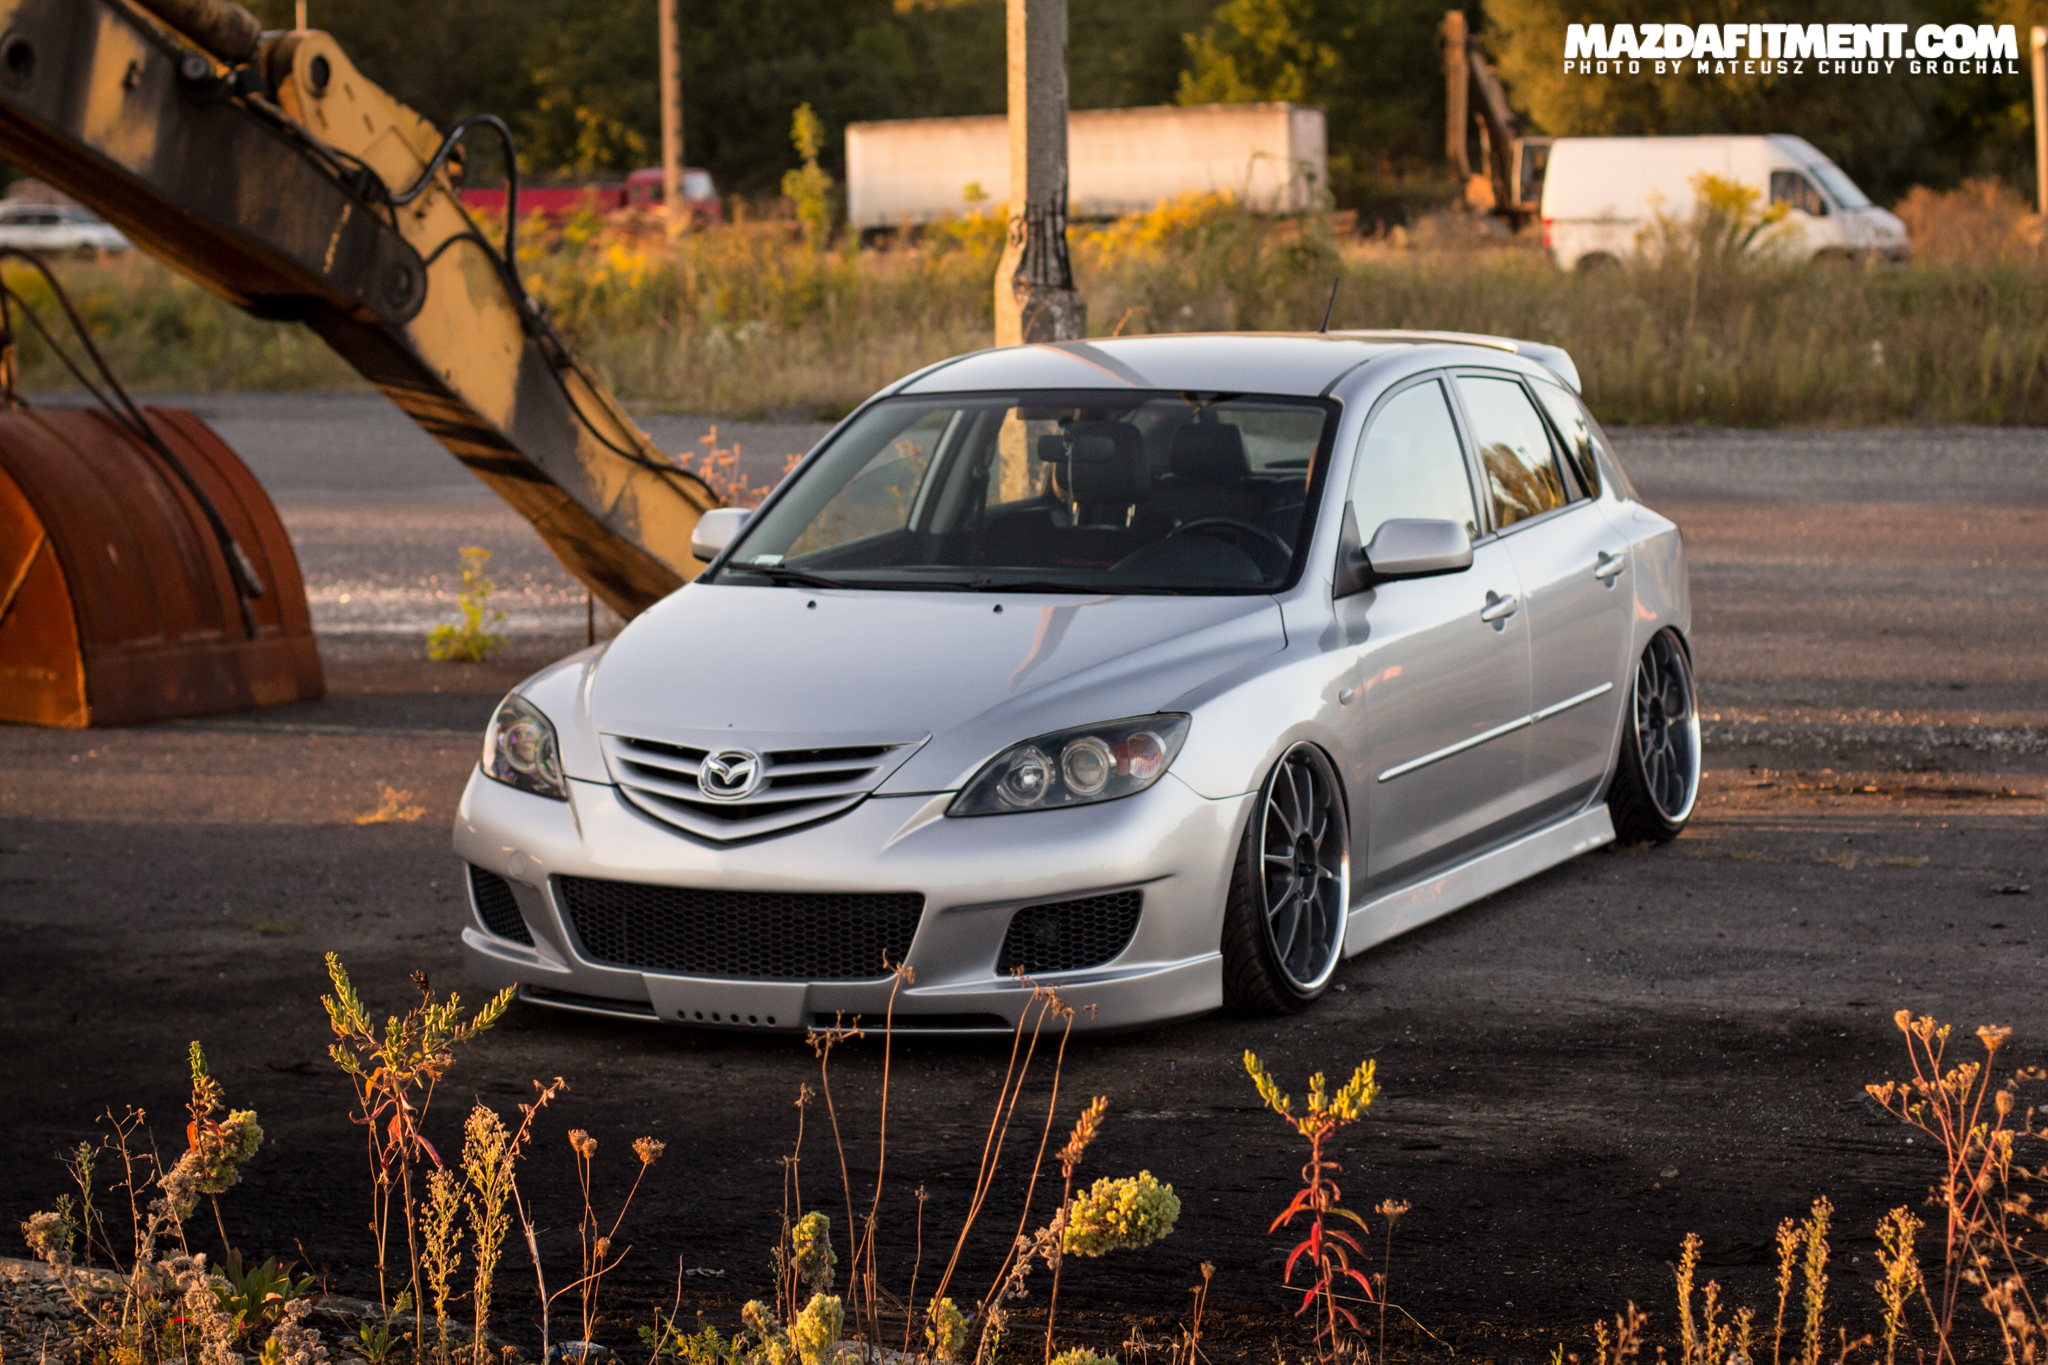 Mazda fitment freshest mazdas in the world chudy remembers always being into cars since his first word as a baby was car but it wasnt until he watched a french movie from 1998 called taxi publicscrutiny Image collections